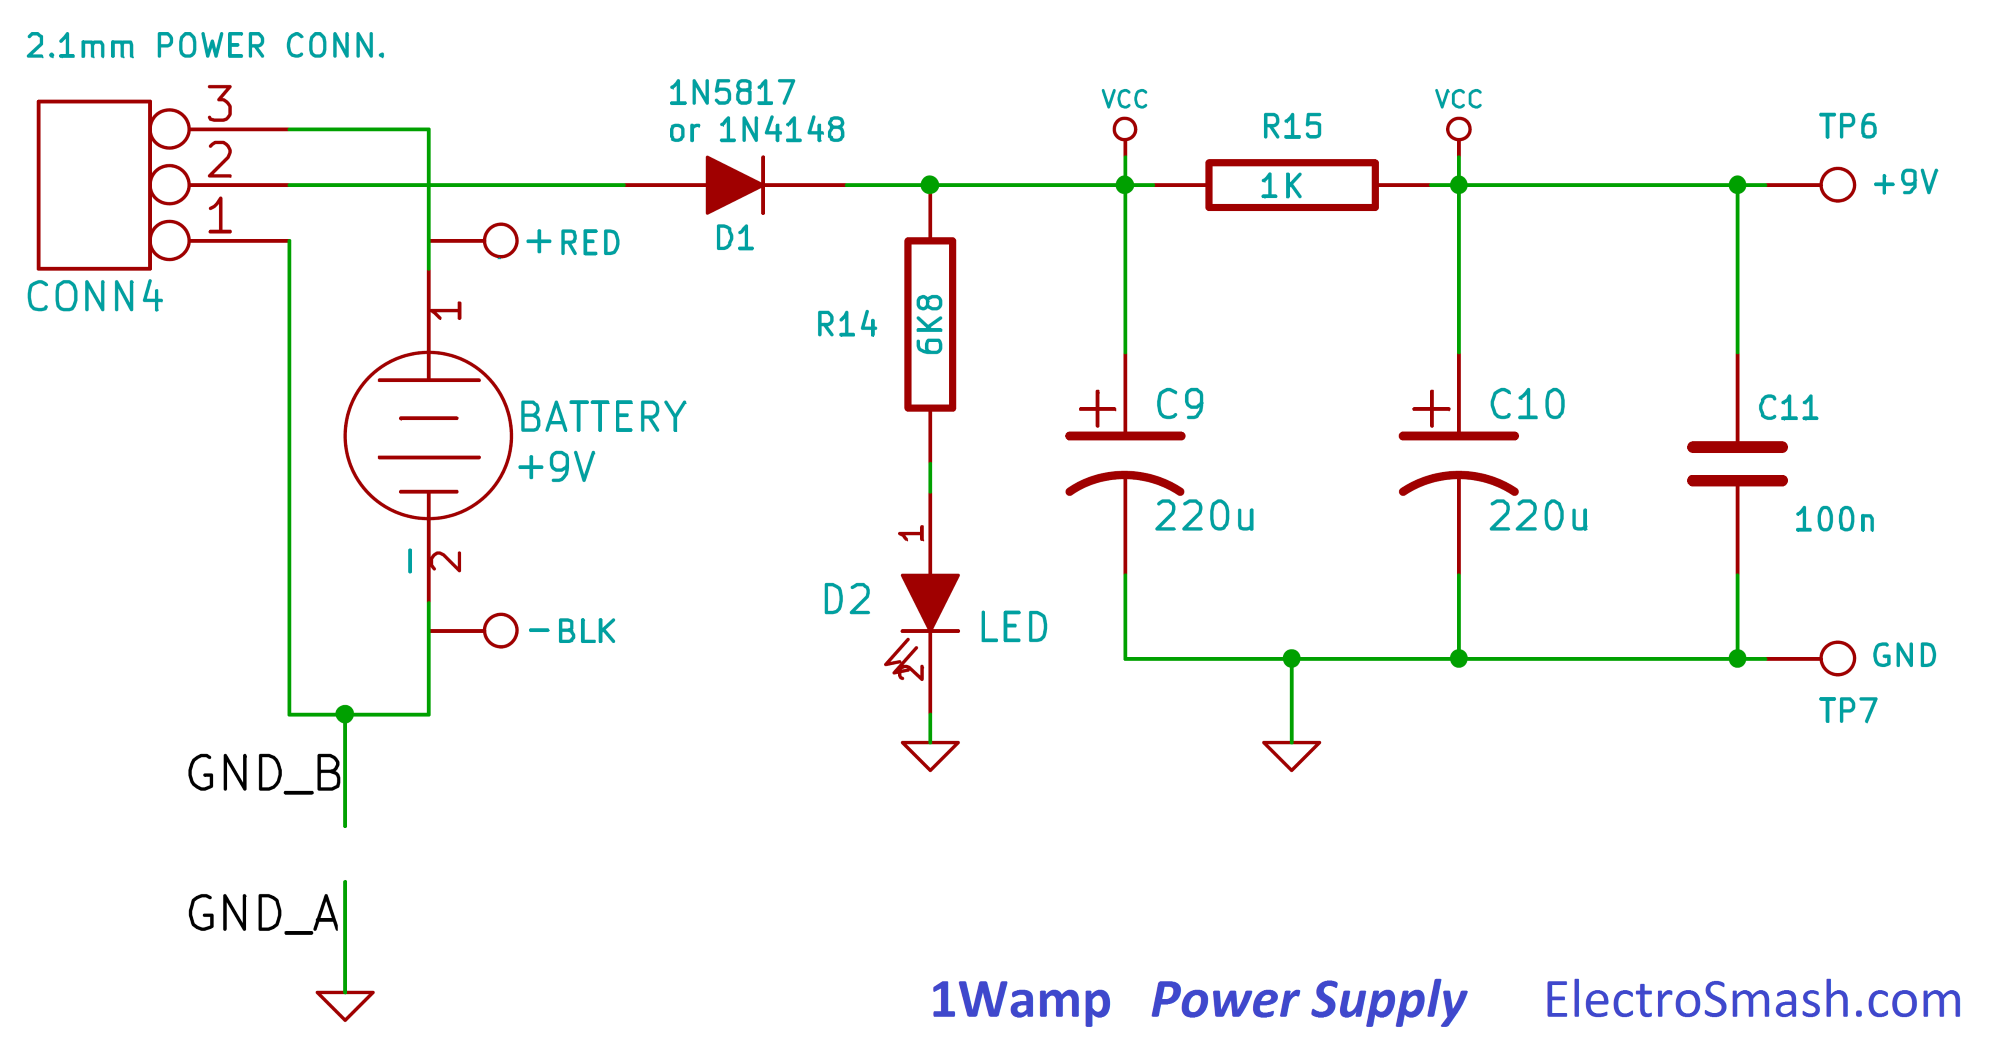 Electrosmash 1wamp Electroc Guitar Amplifier Audio Power Schematics 4w 8 Watt Amp Supply Stage